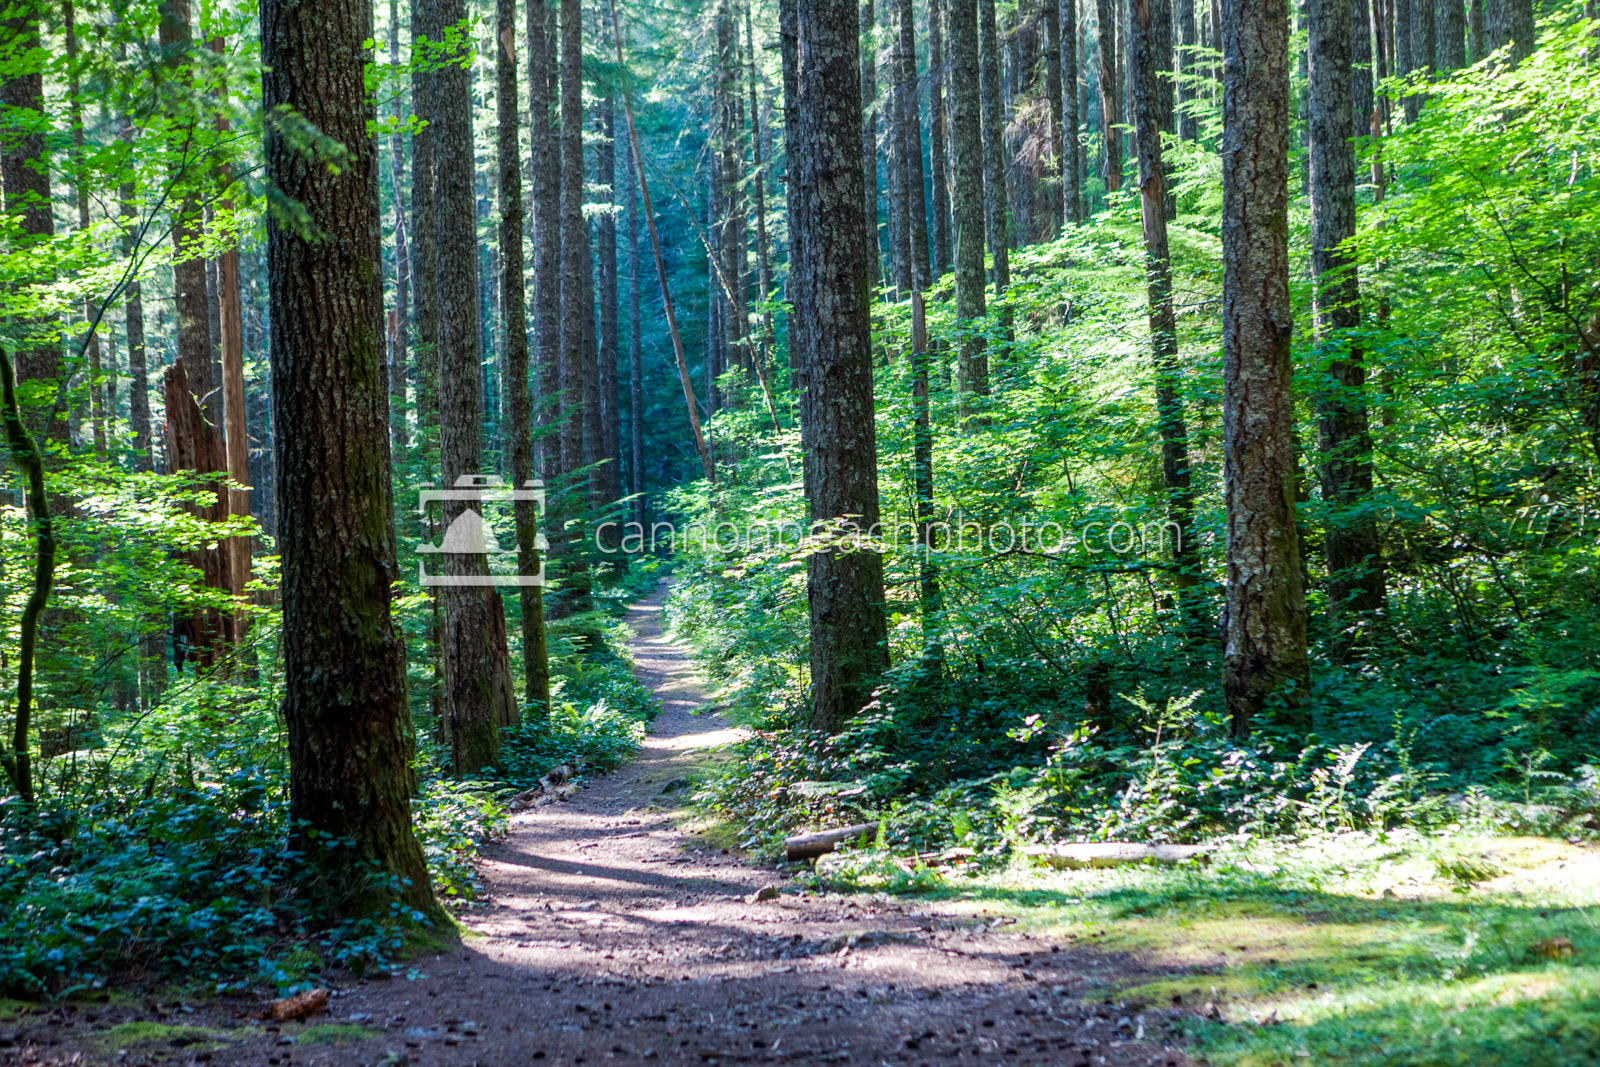 Sunlit Path thru the Tall Forest, Horizontal